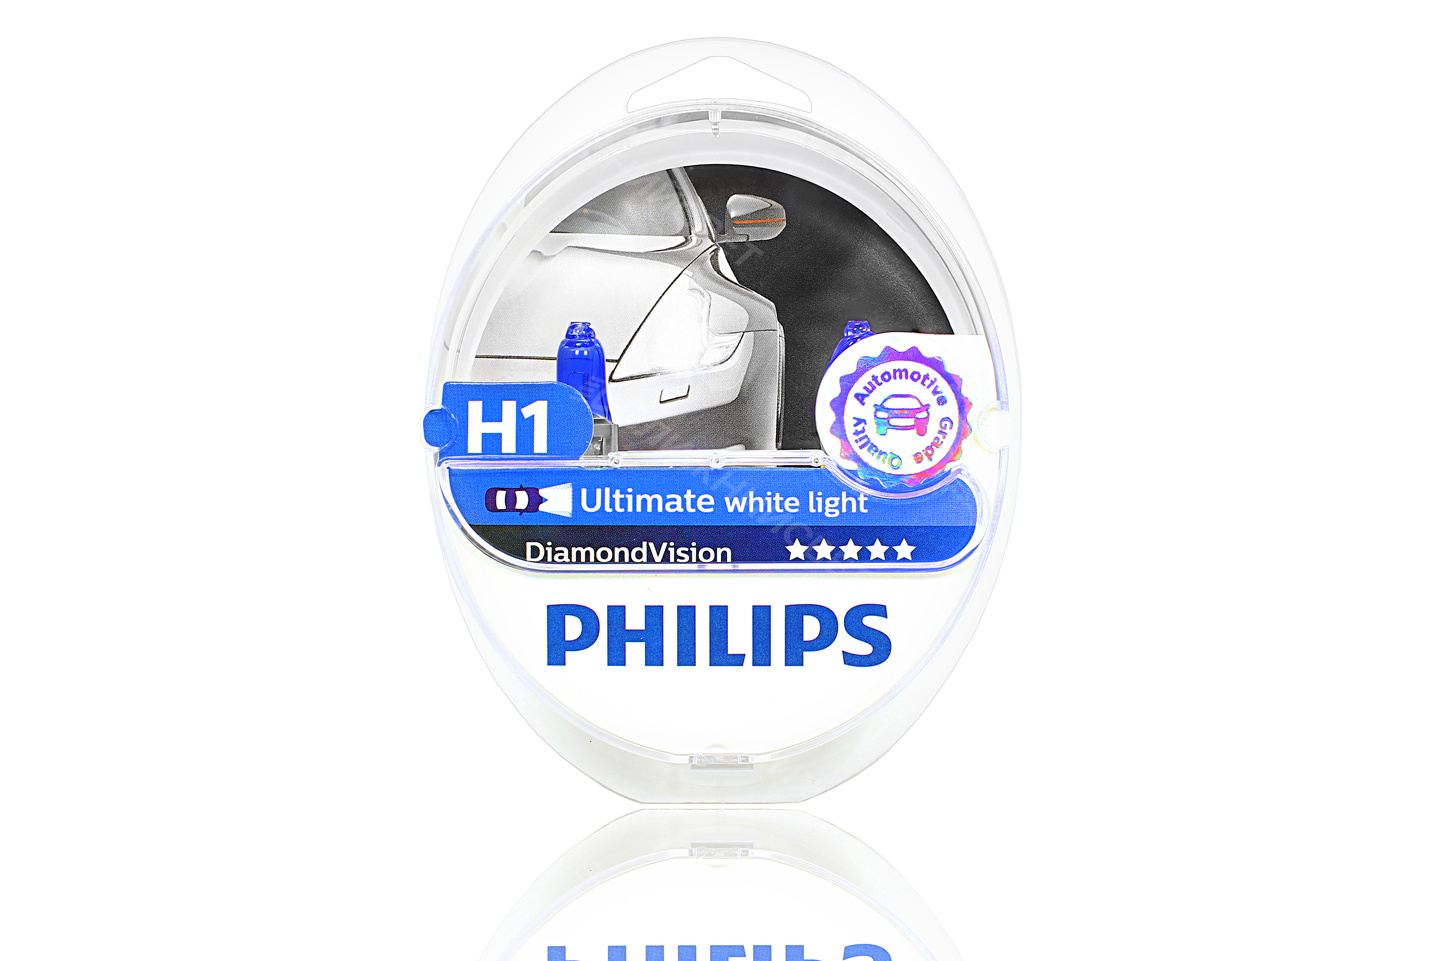 Фото Комплект галогенных автоламп PHILIPS H1 DIAMOND VISION 5000°K (12V, 55W) (Германия) (12258DVS2) артикул 12258DVS2